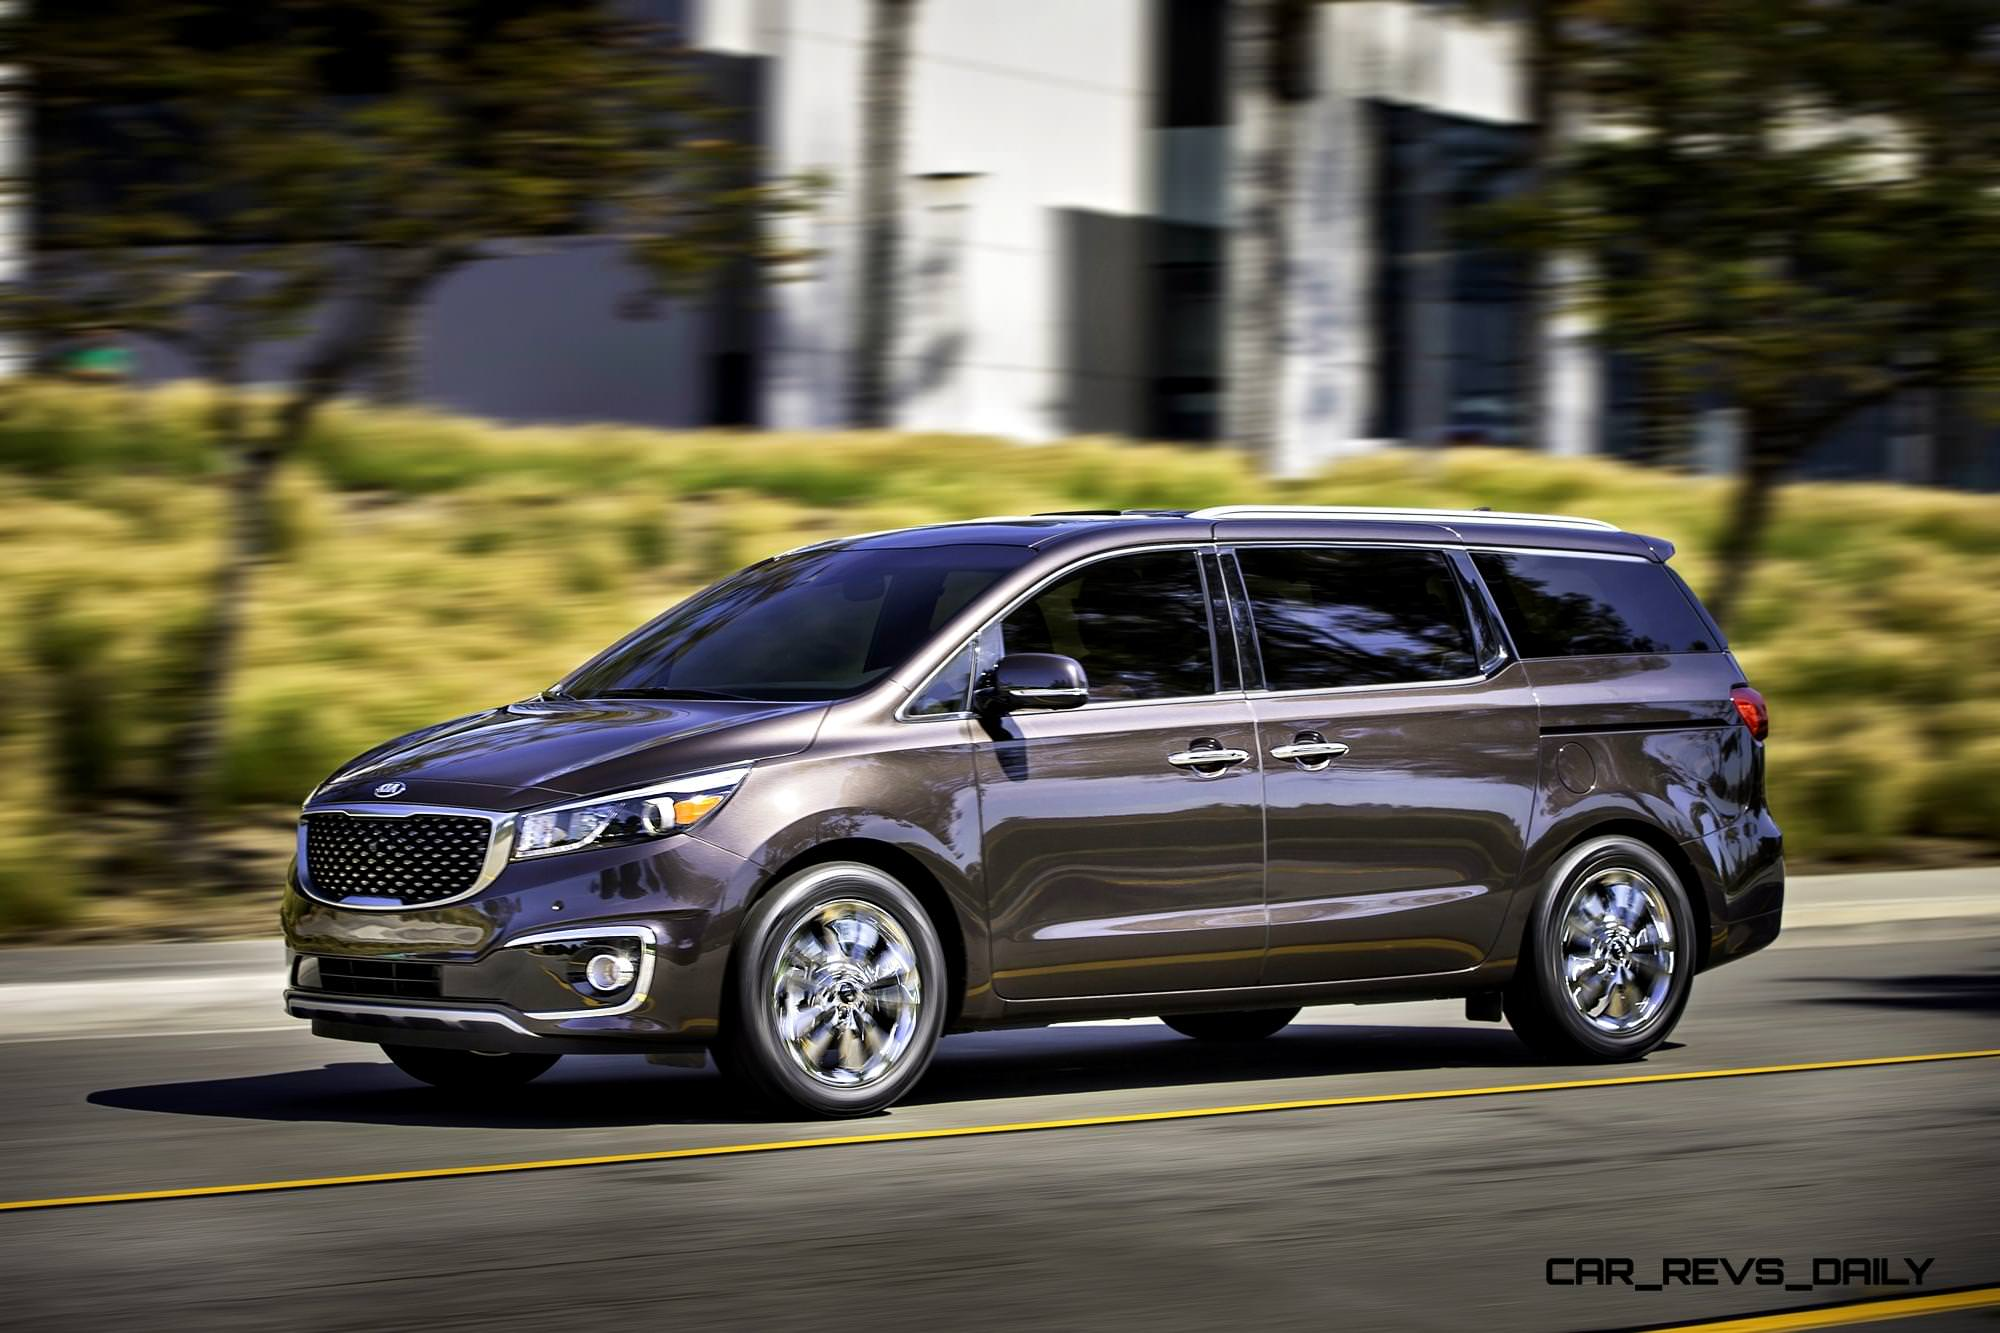 2015 Kia Sedona Becomes Seriously Competitive With Lux Style Tech Peugeot 306 D Turbo Fuse Box Diagram And Cabin Space 6